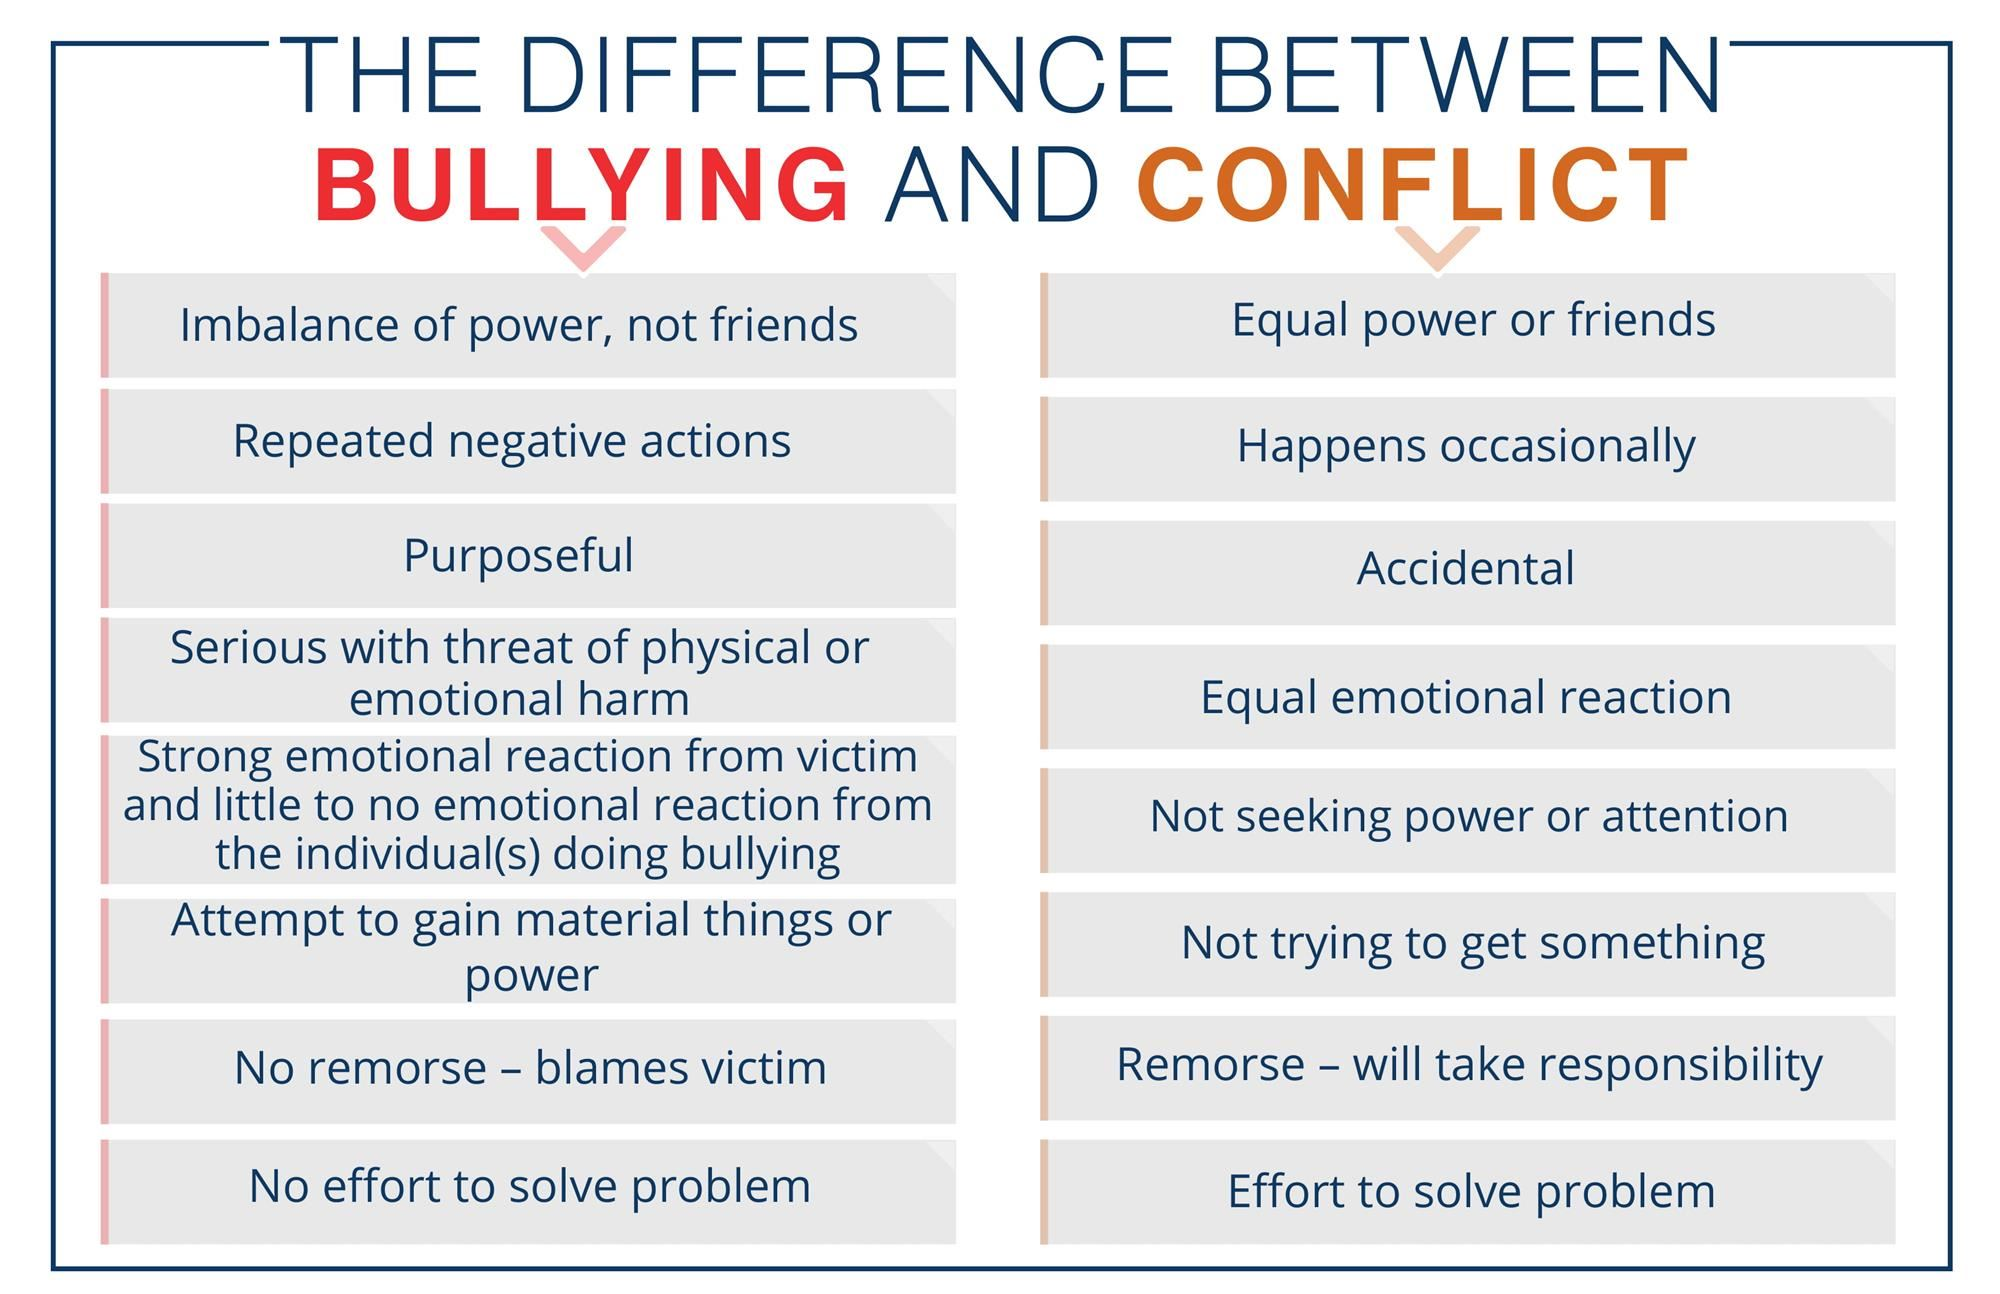 The difference between bullying and conflict